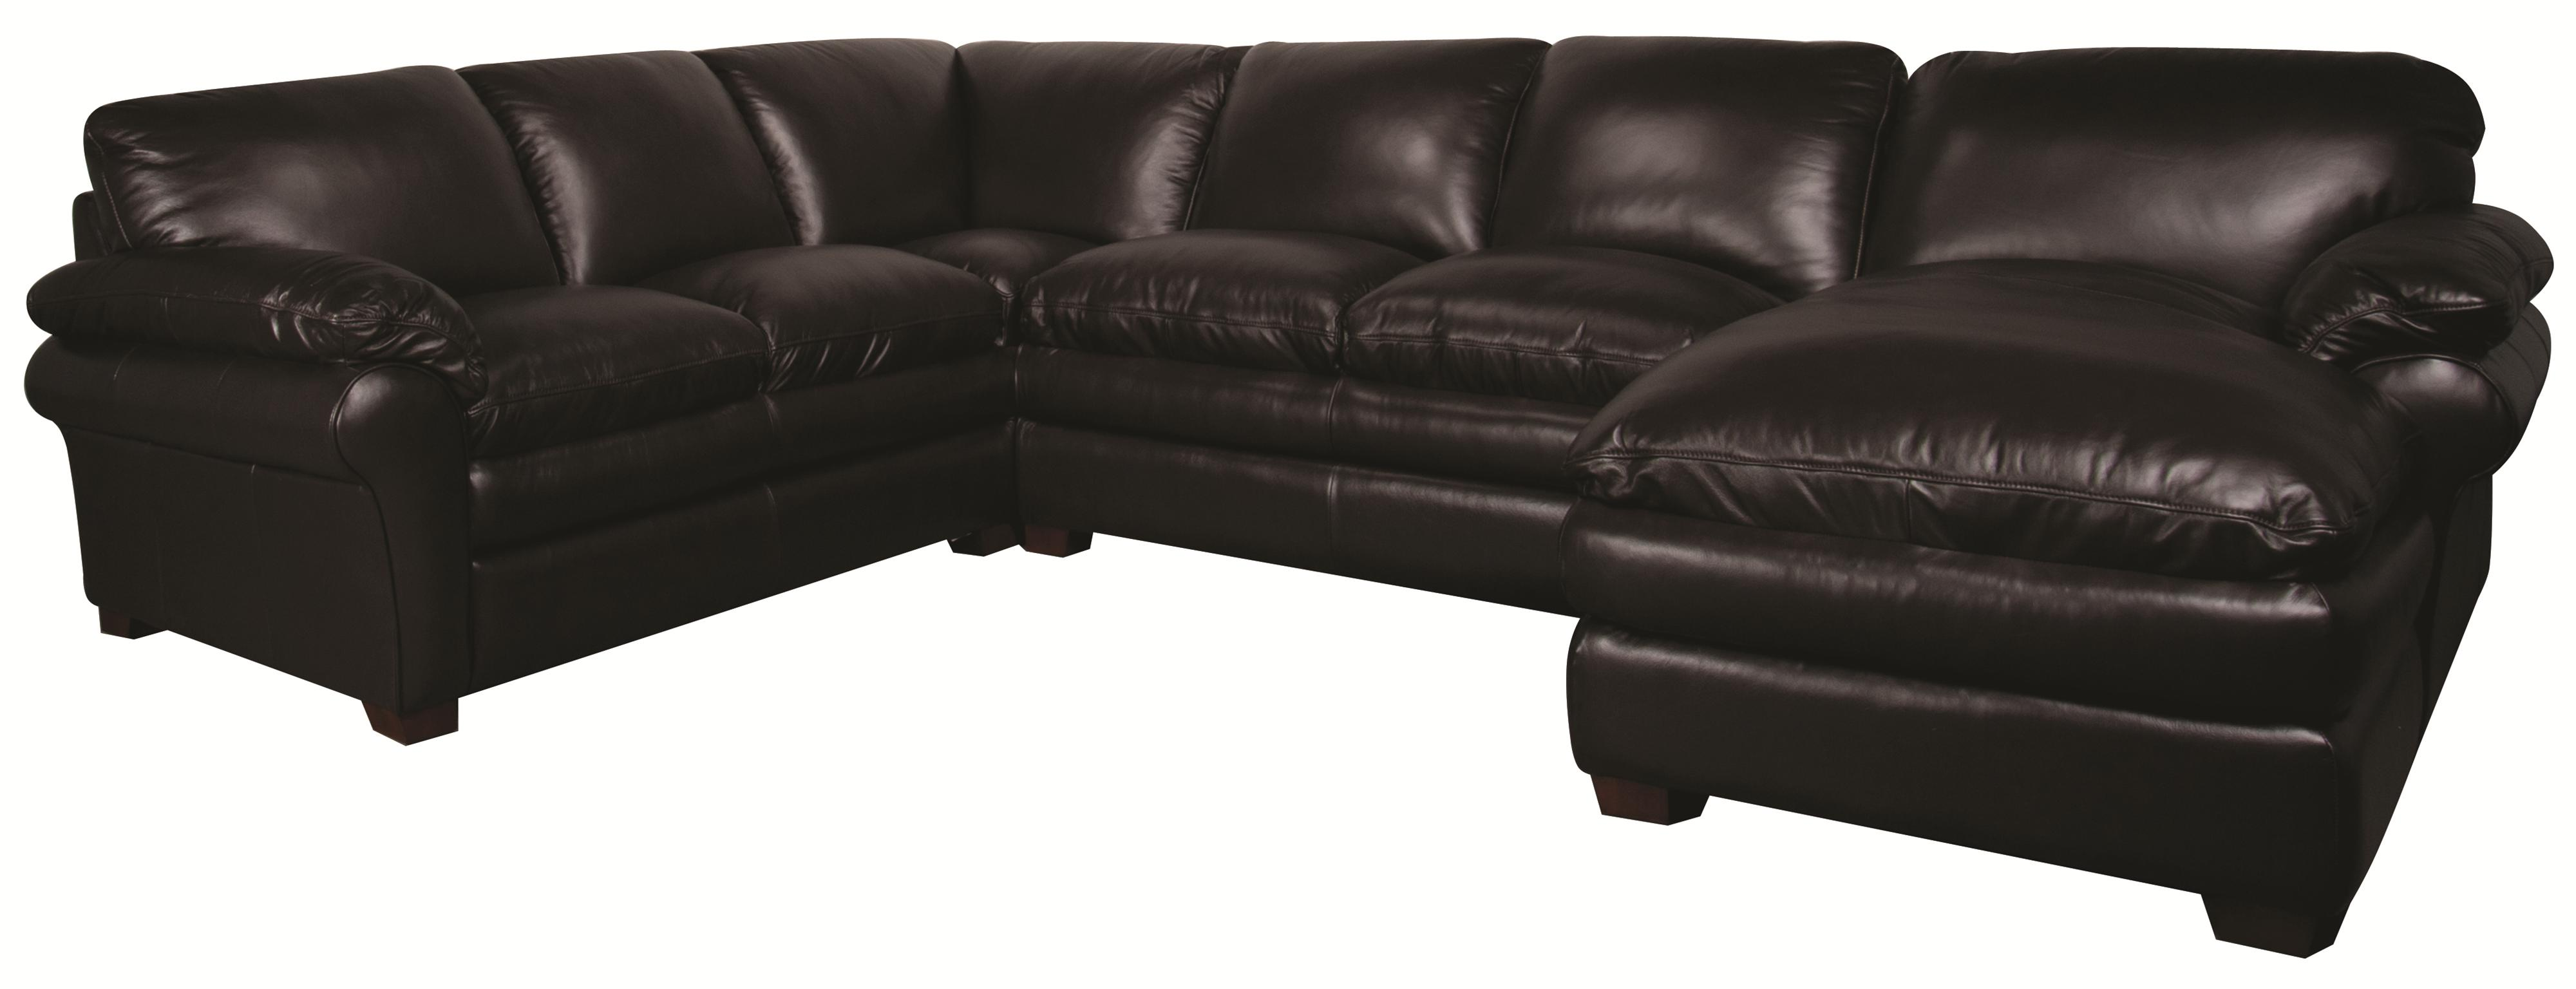 Edison 100% Leather Sectional Sofa